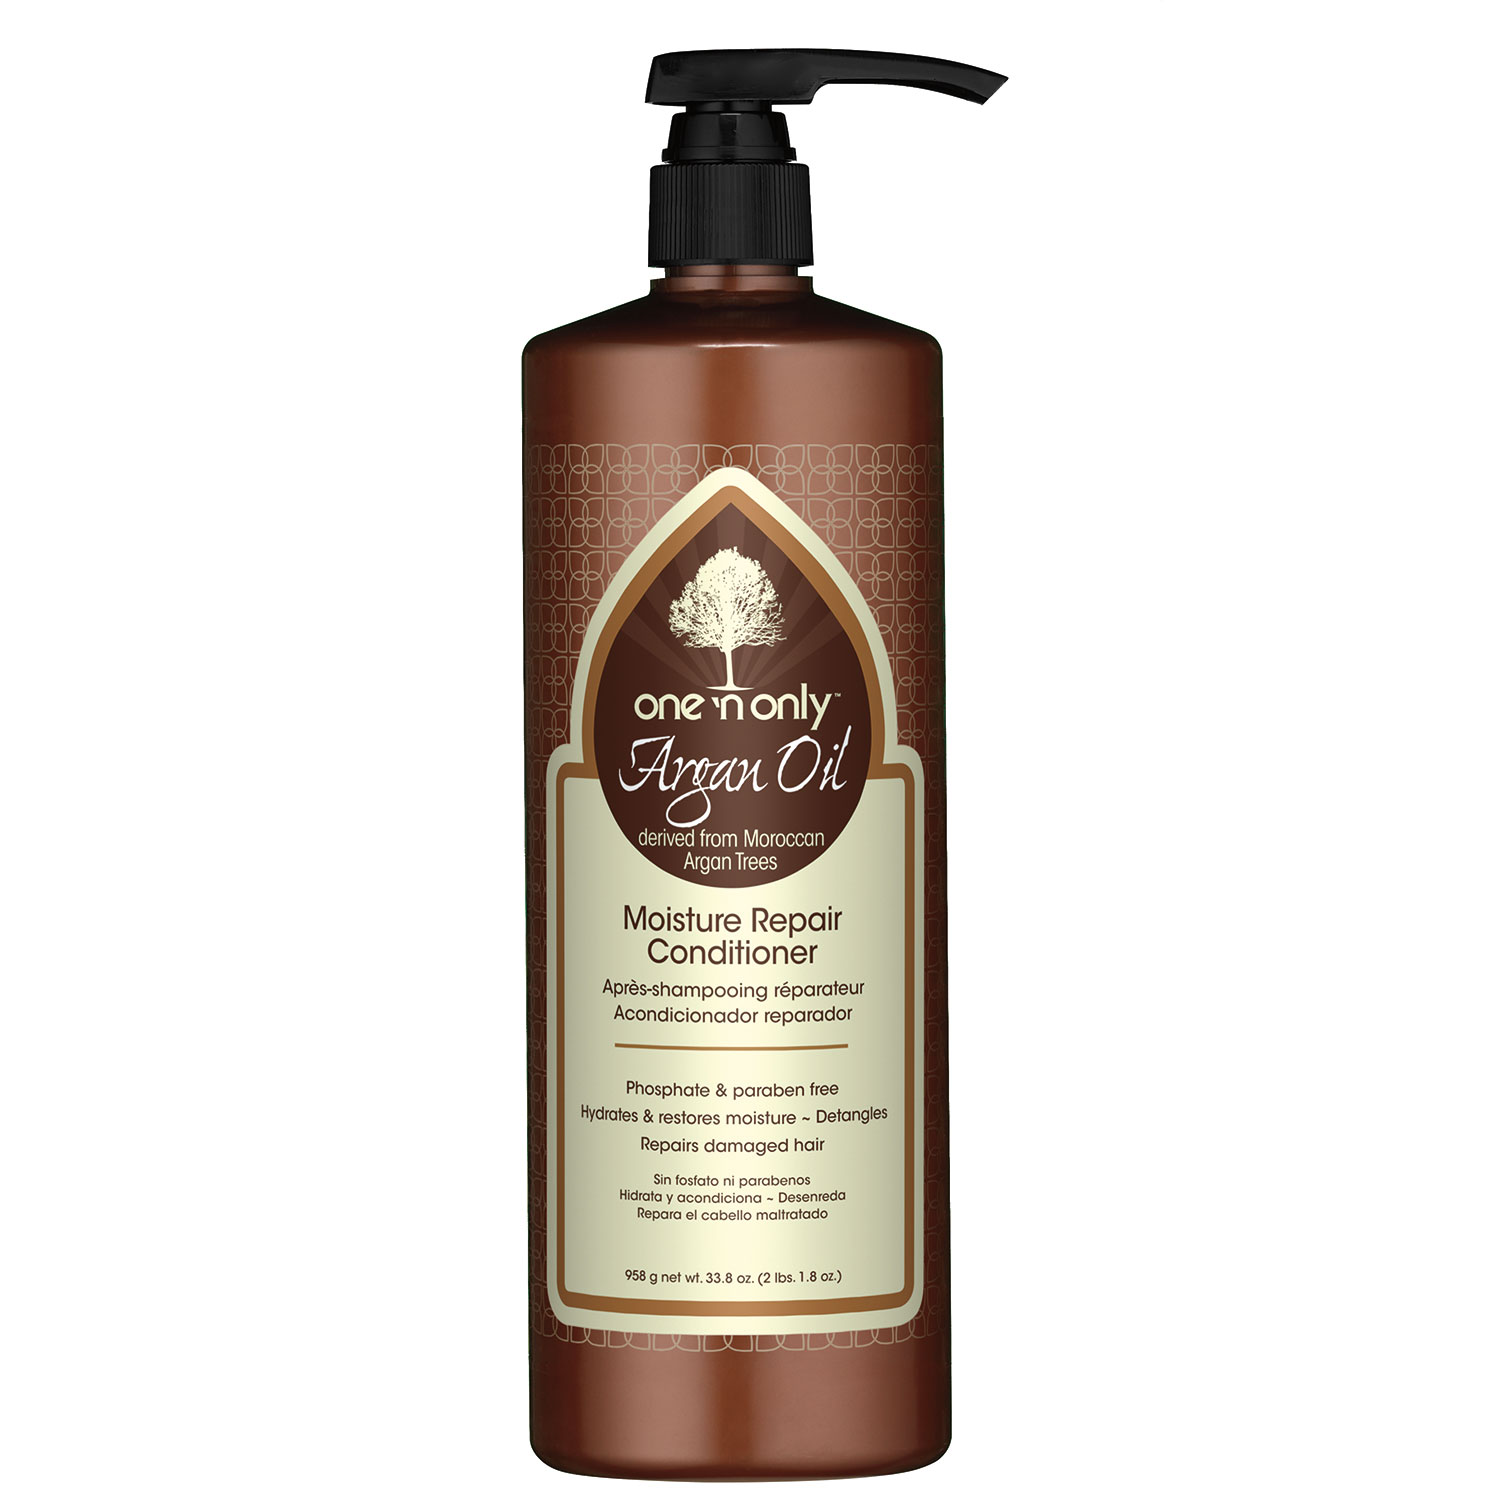 Image of One n Only Argan Oil Moisture Repair Conditioner - 33.8oz